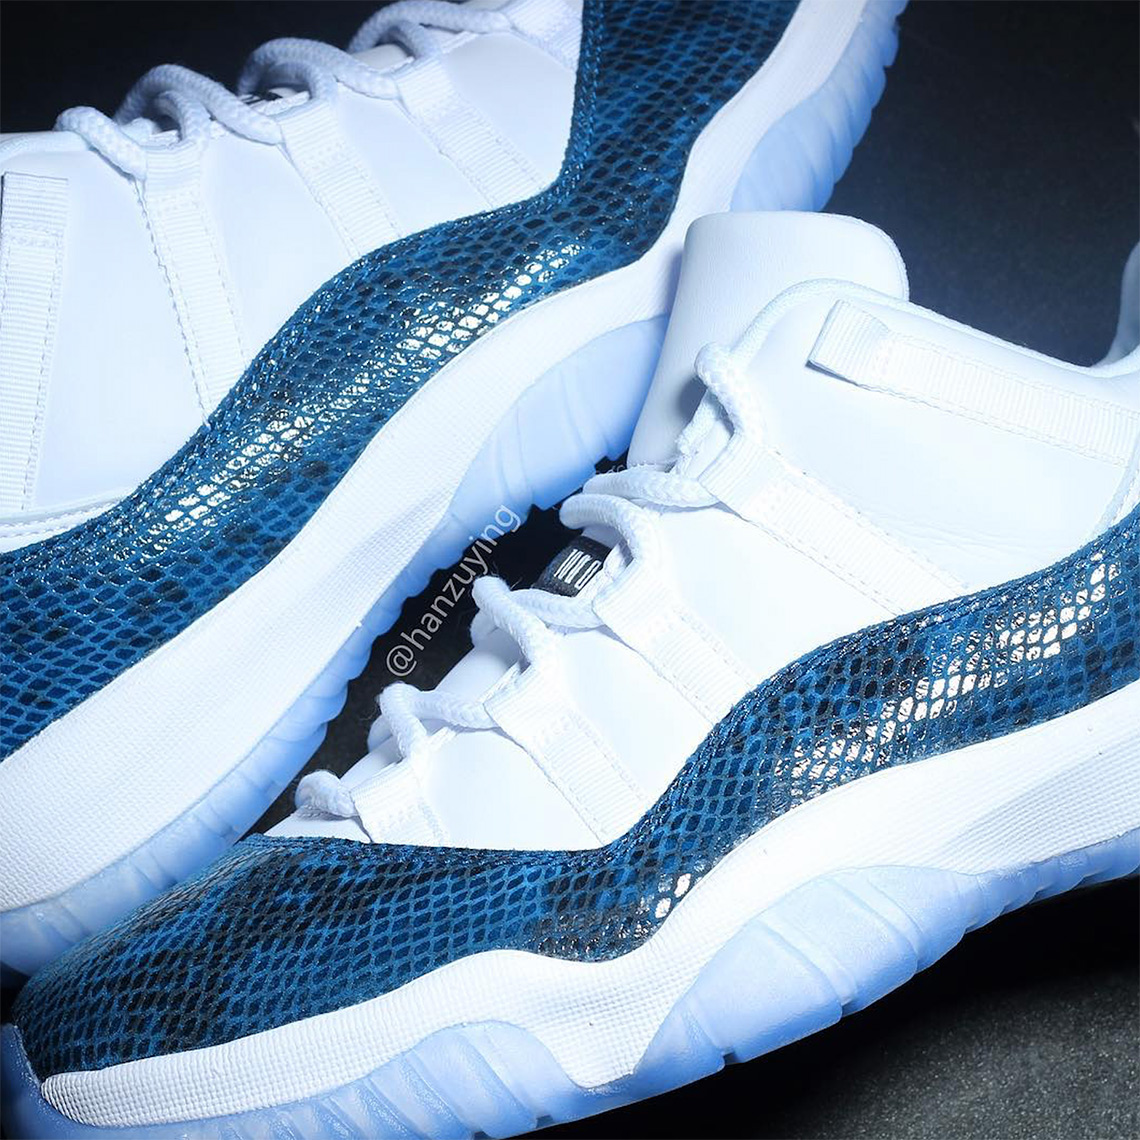 reputable site 41622 2ce96 Air Jordan 11 Low Release Date  April 19th, 2019  185. Color  White Black- Navy Style Code  CD6846-102. Advertisement. Advertisement